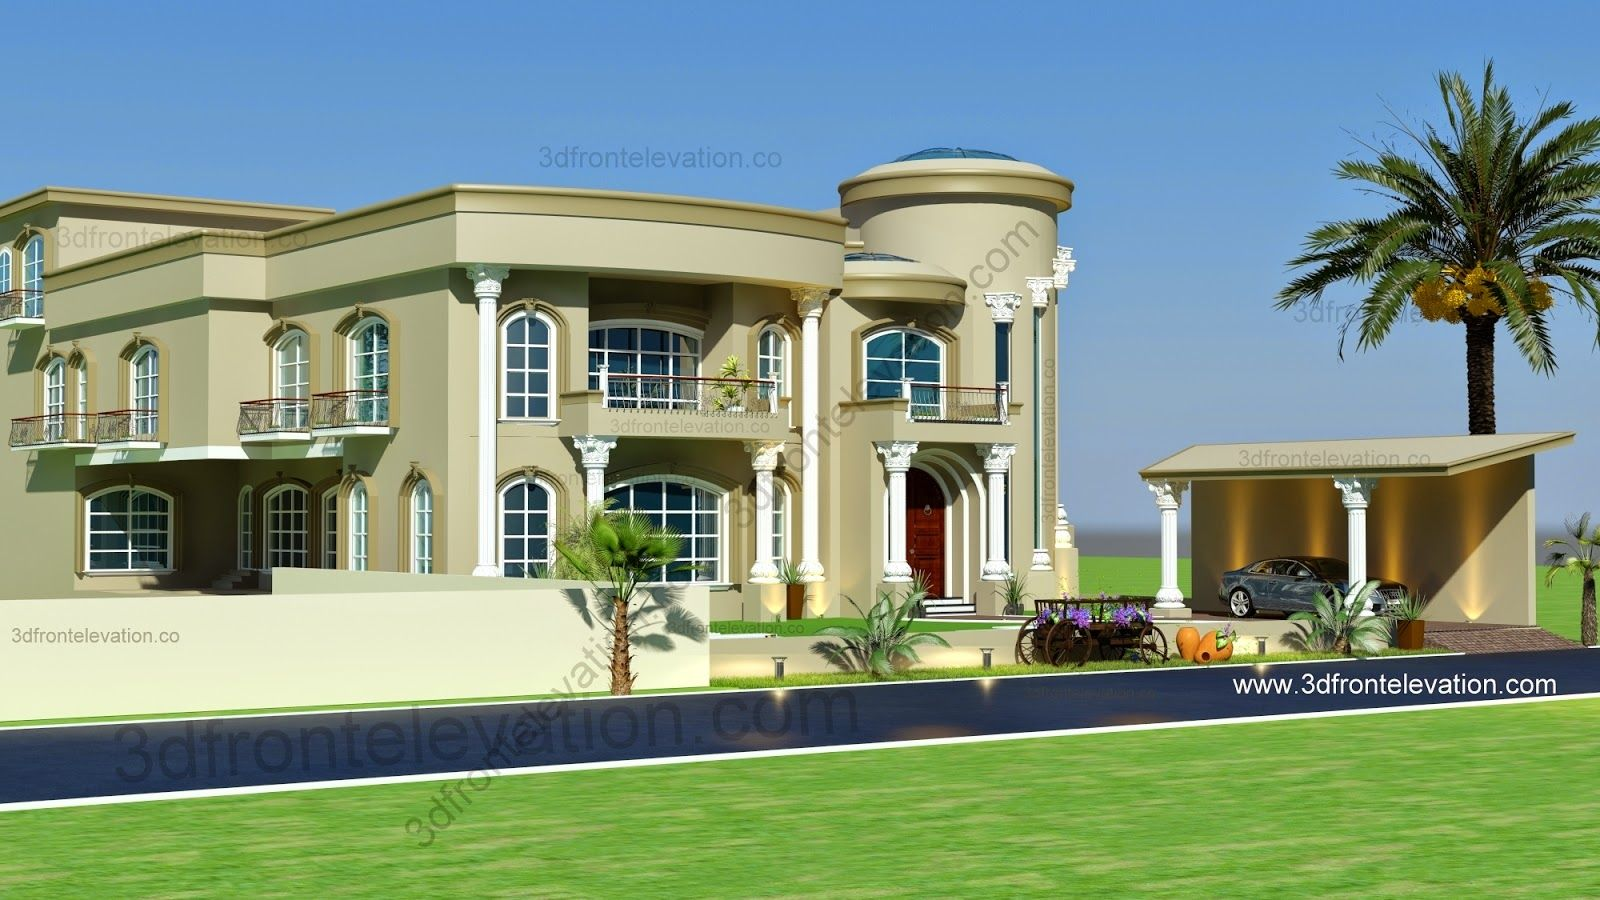 Modern Arabic Villa Design 2015 3d Front Elevation Pinterest Villa Design Villas And Modern